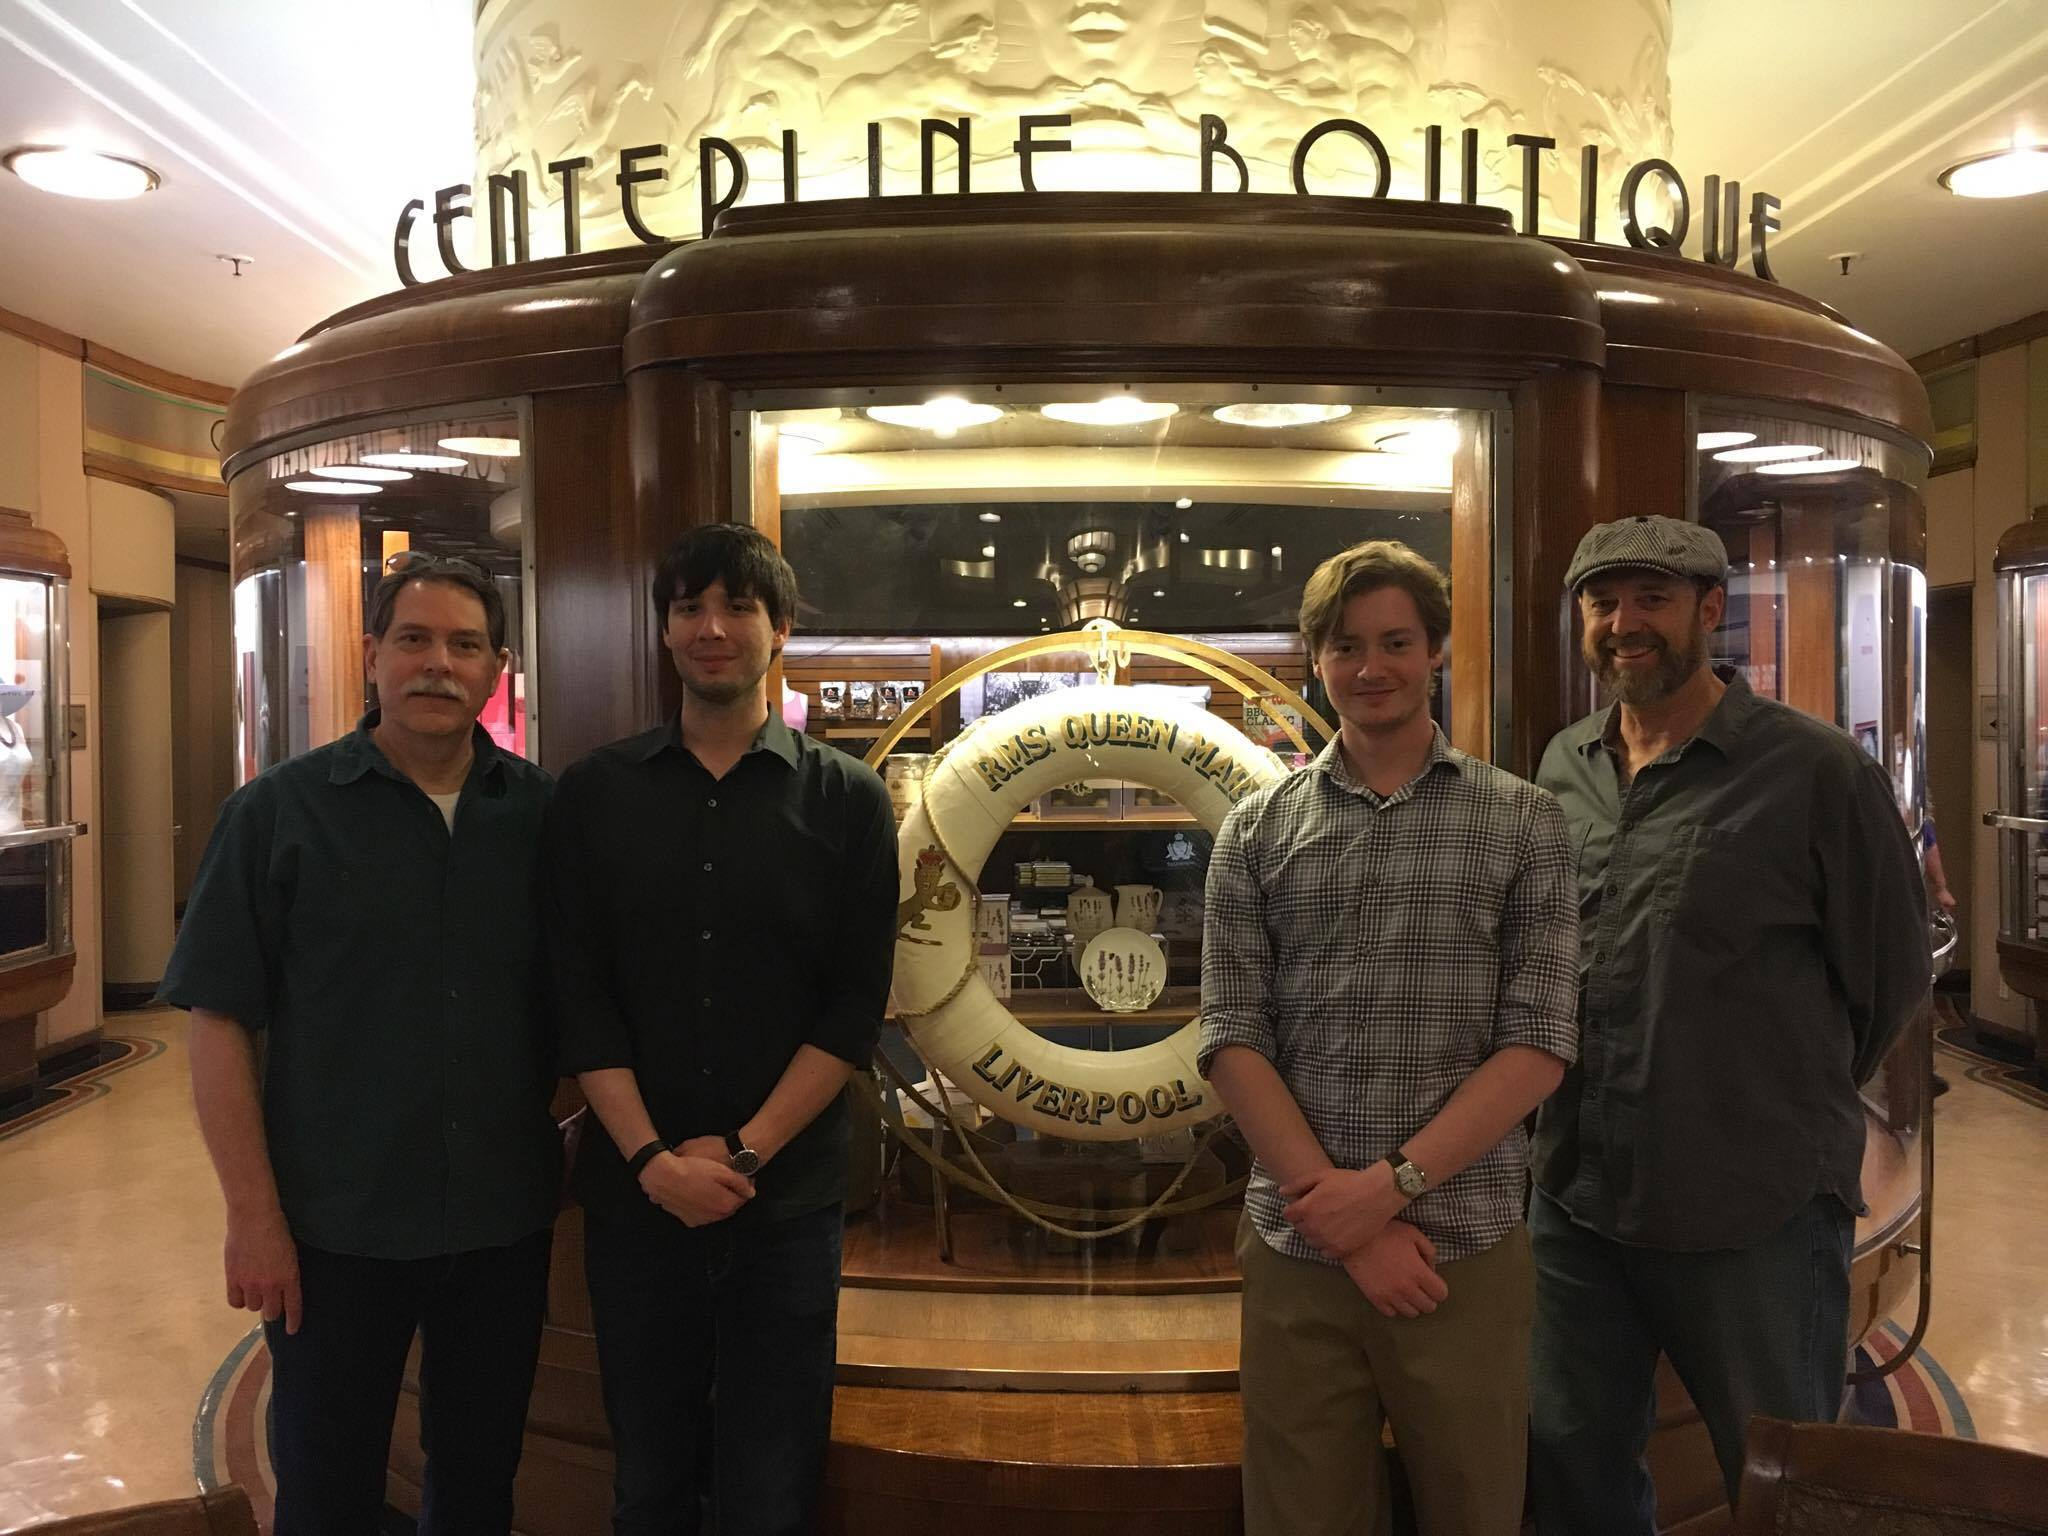 From left to right: Ken Marschall, Matt DeWinkeleer, Thomas Lynskey, and Parks Stephenson aboard Queen Mary docked in Long Beach, California.